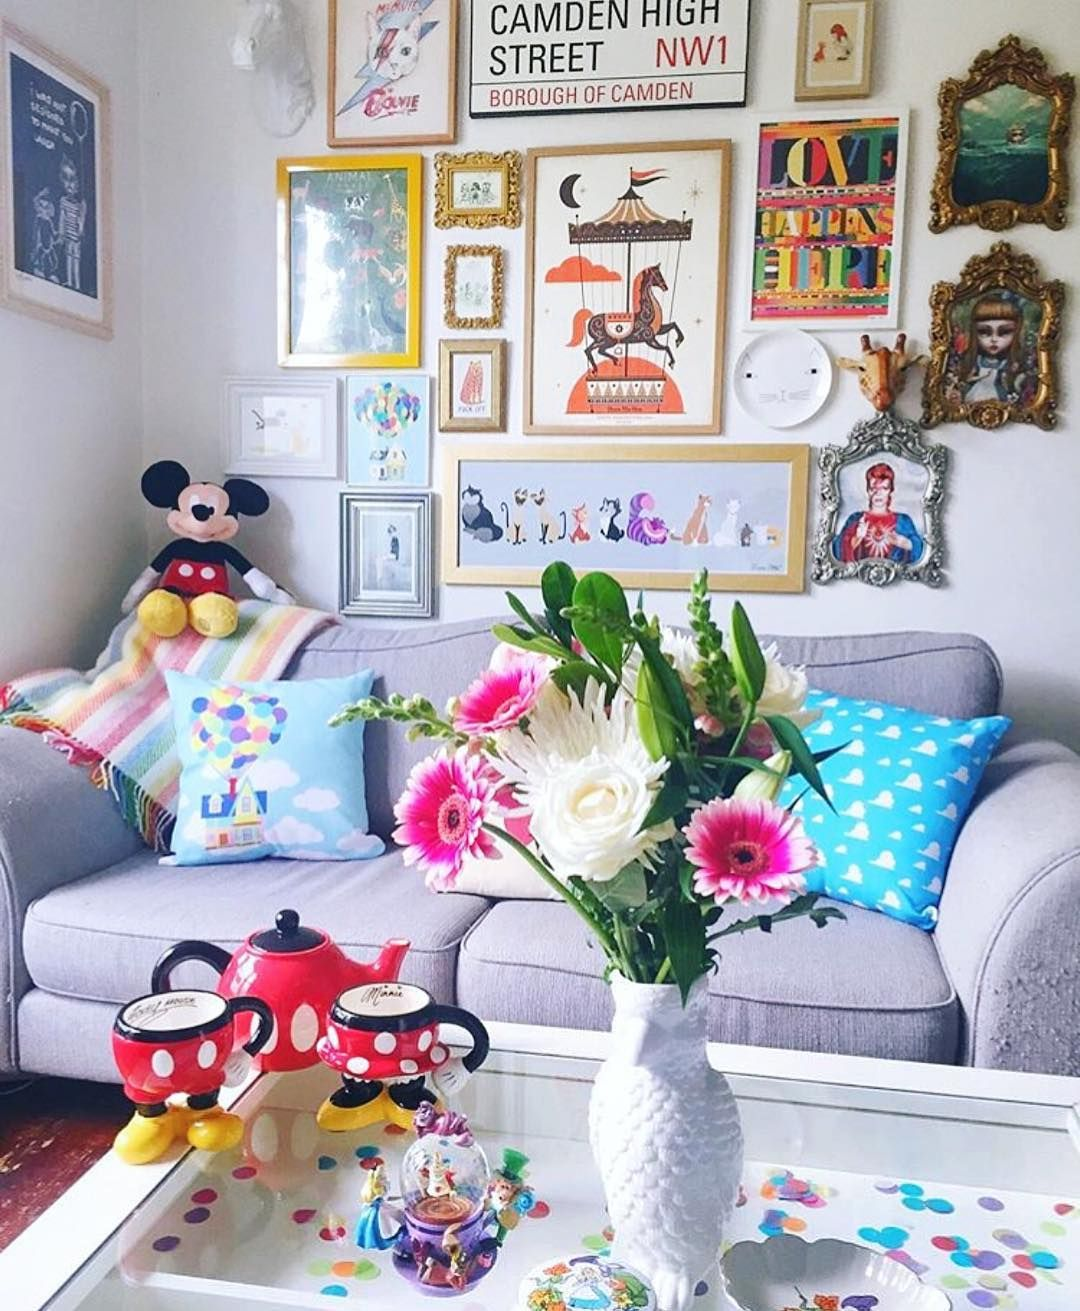 """Disney At Home on Instagram: """"Our sweet friend @joinwonderland has the most magical family room on earth, little bits of Disney magic in every corner!! Thank you for…"""""""